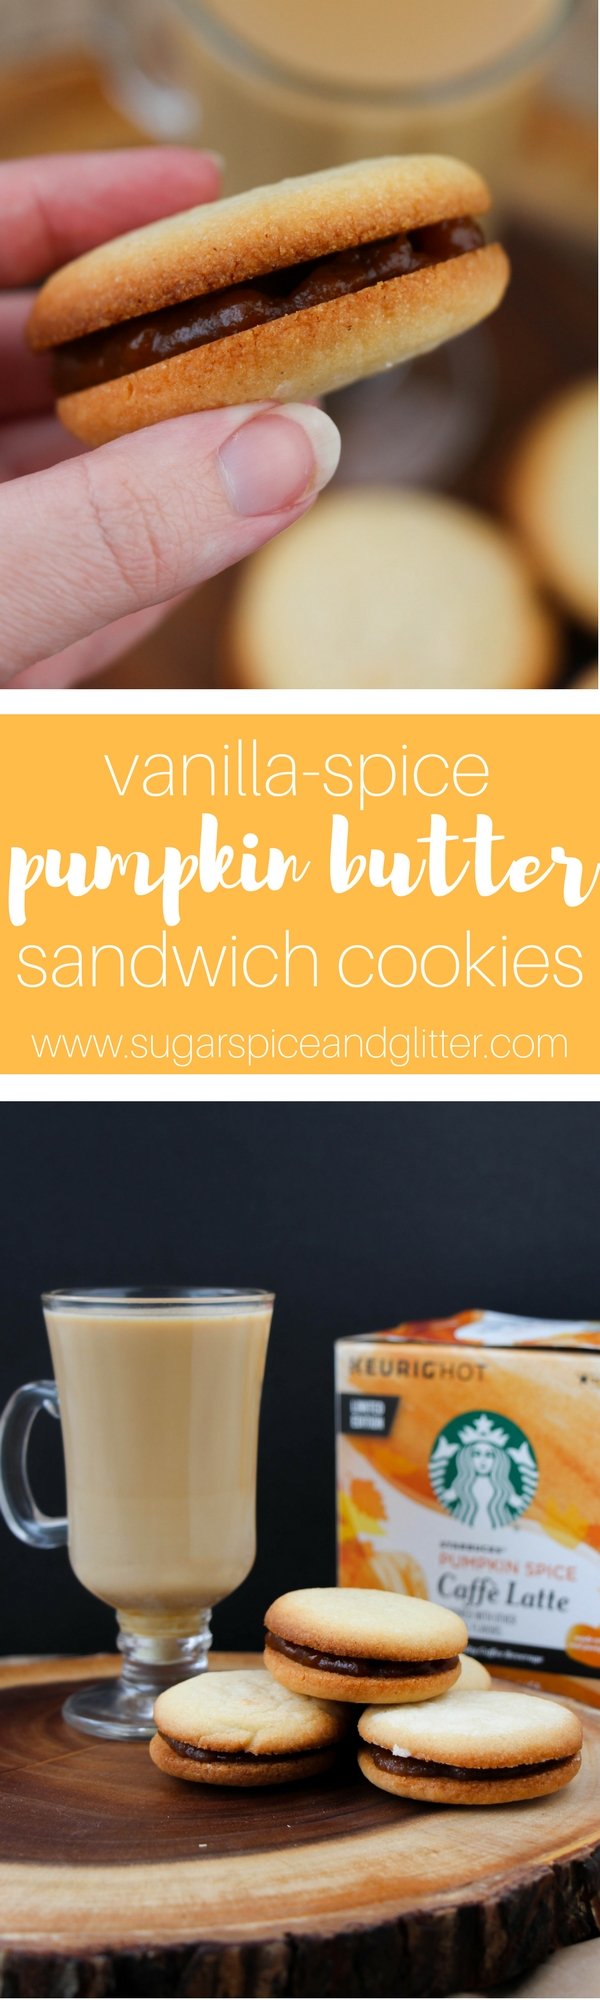 Spiced vanilla butter cookies with two delicious filling options – pumpkin butter and apple butter. The perfect easy fall cookie for pairing with a hot Pumpkin Spice Cafe Latte